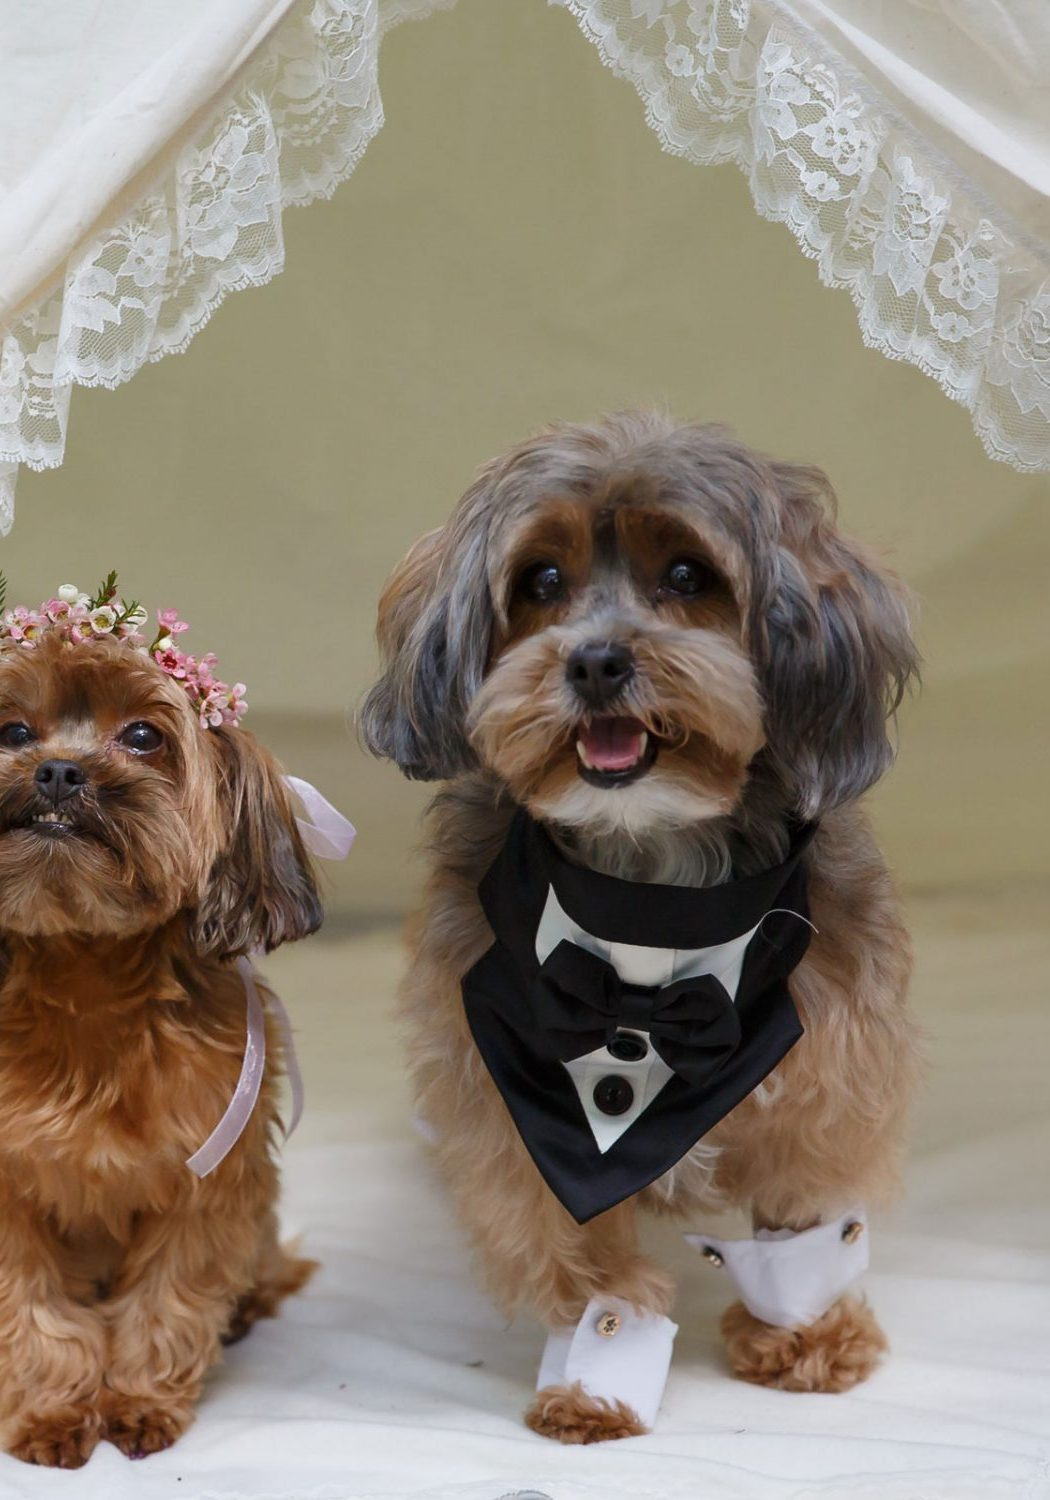 Coco & Truffles: An Adorable Puppy Wedding. Dogs in weddings